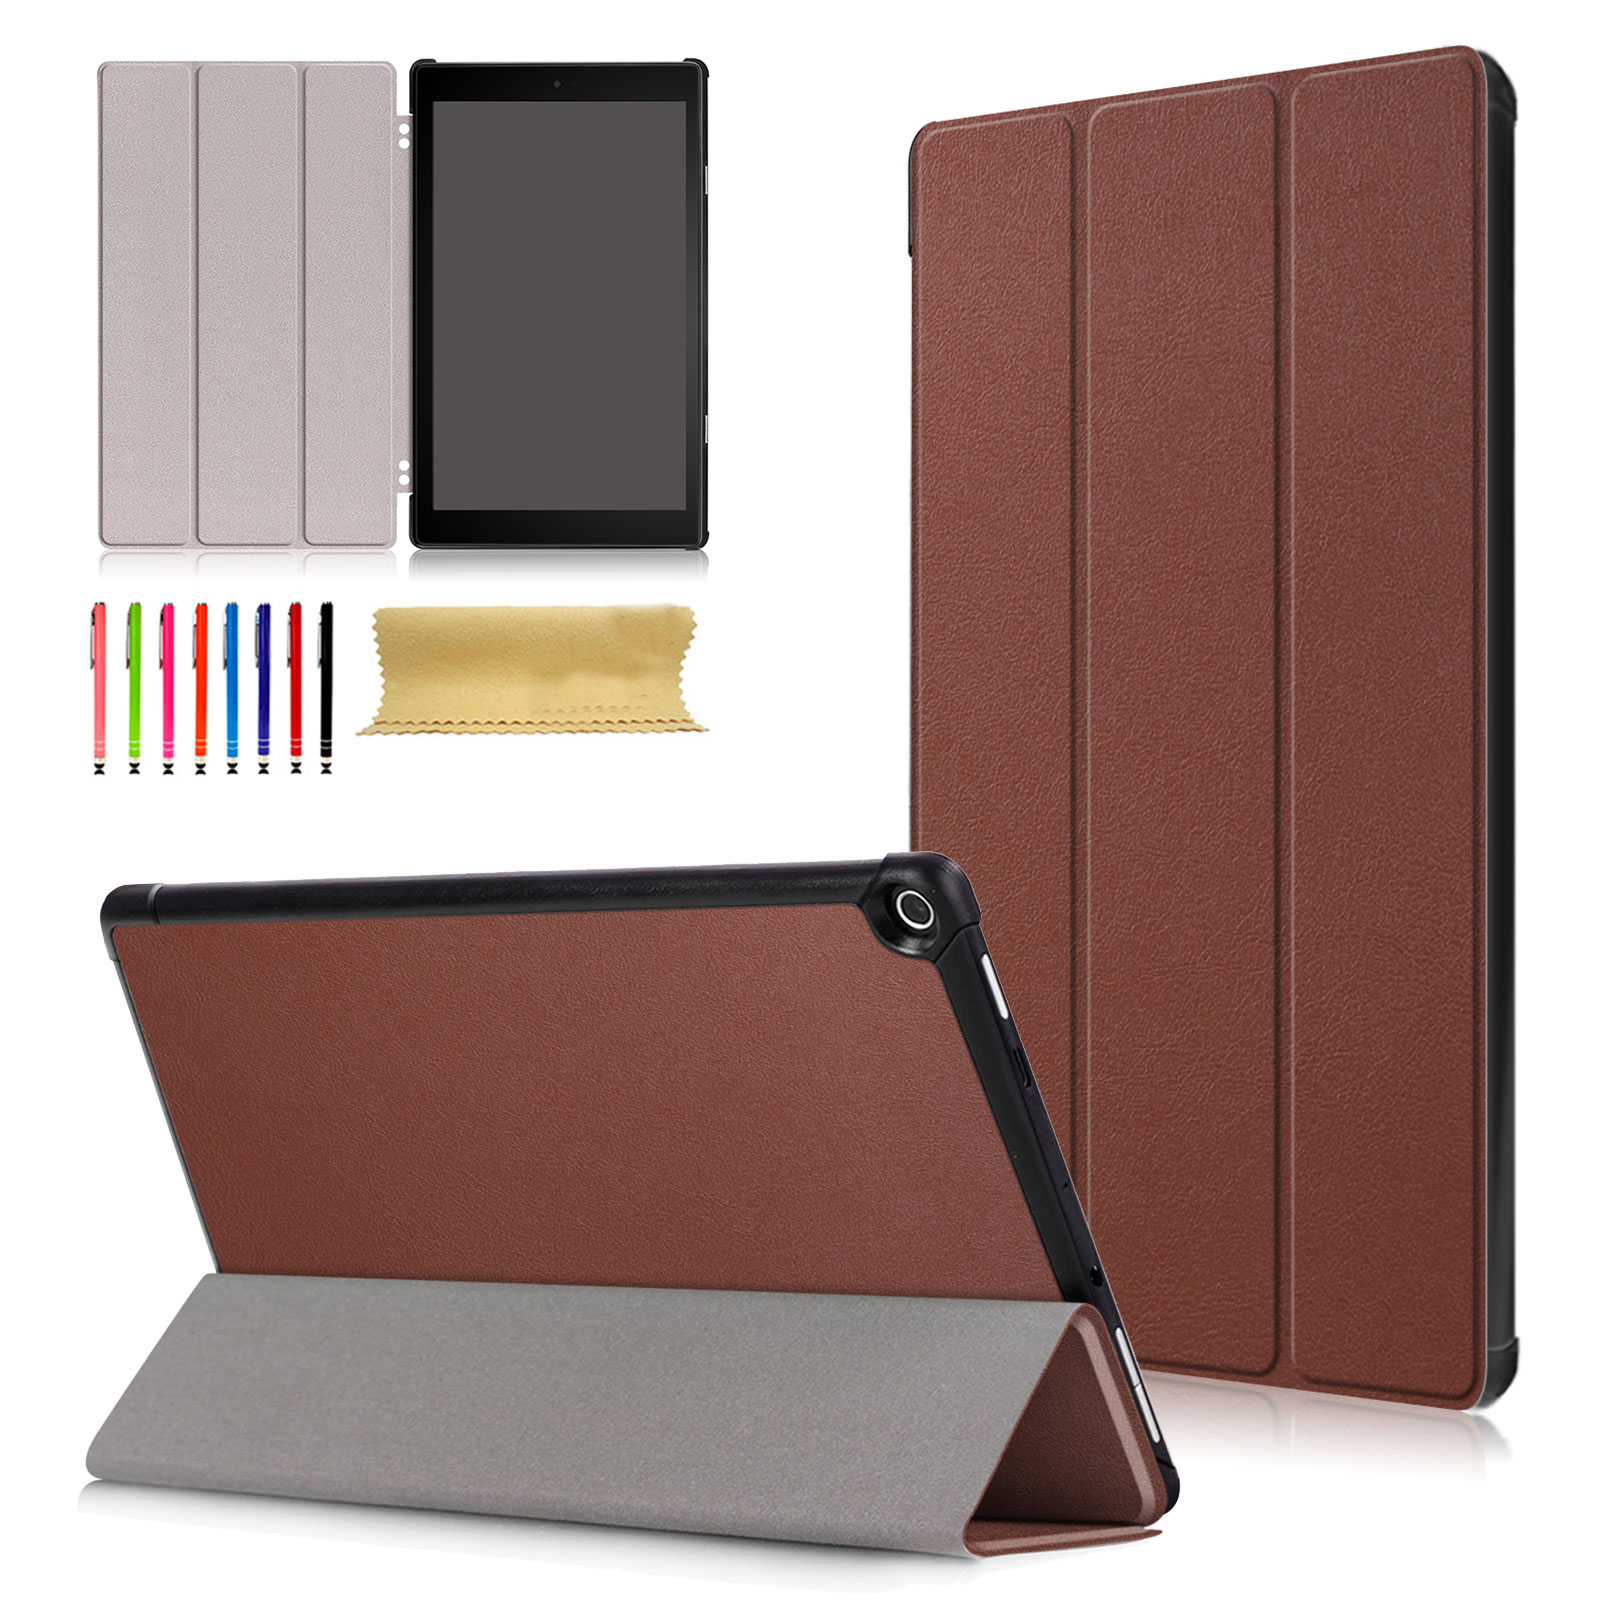 Fire HD 10 (7th Generation, 2017 Release), Goodest Ultra Slim Fit PU Leather Protective Case Cover with Smart Auto Sleep/Wake Function for Amazon Fire HD 10.1 inch Tablet, Brown